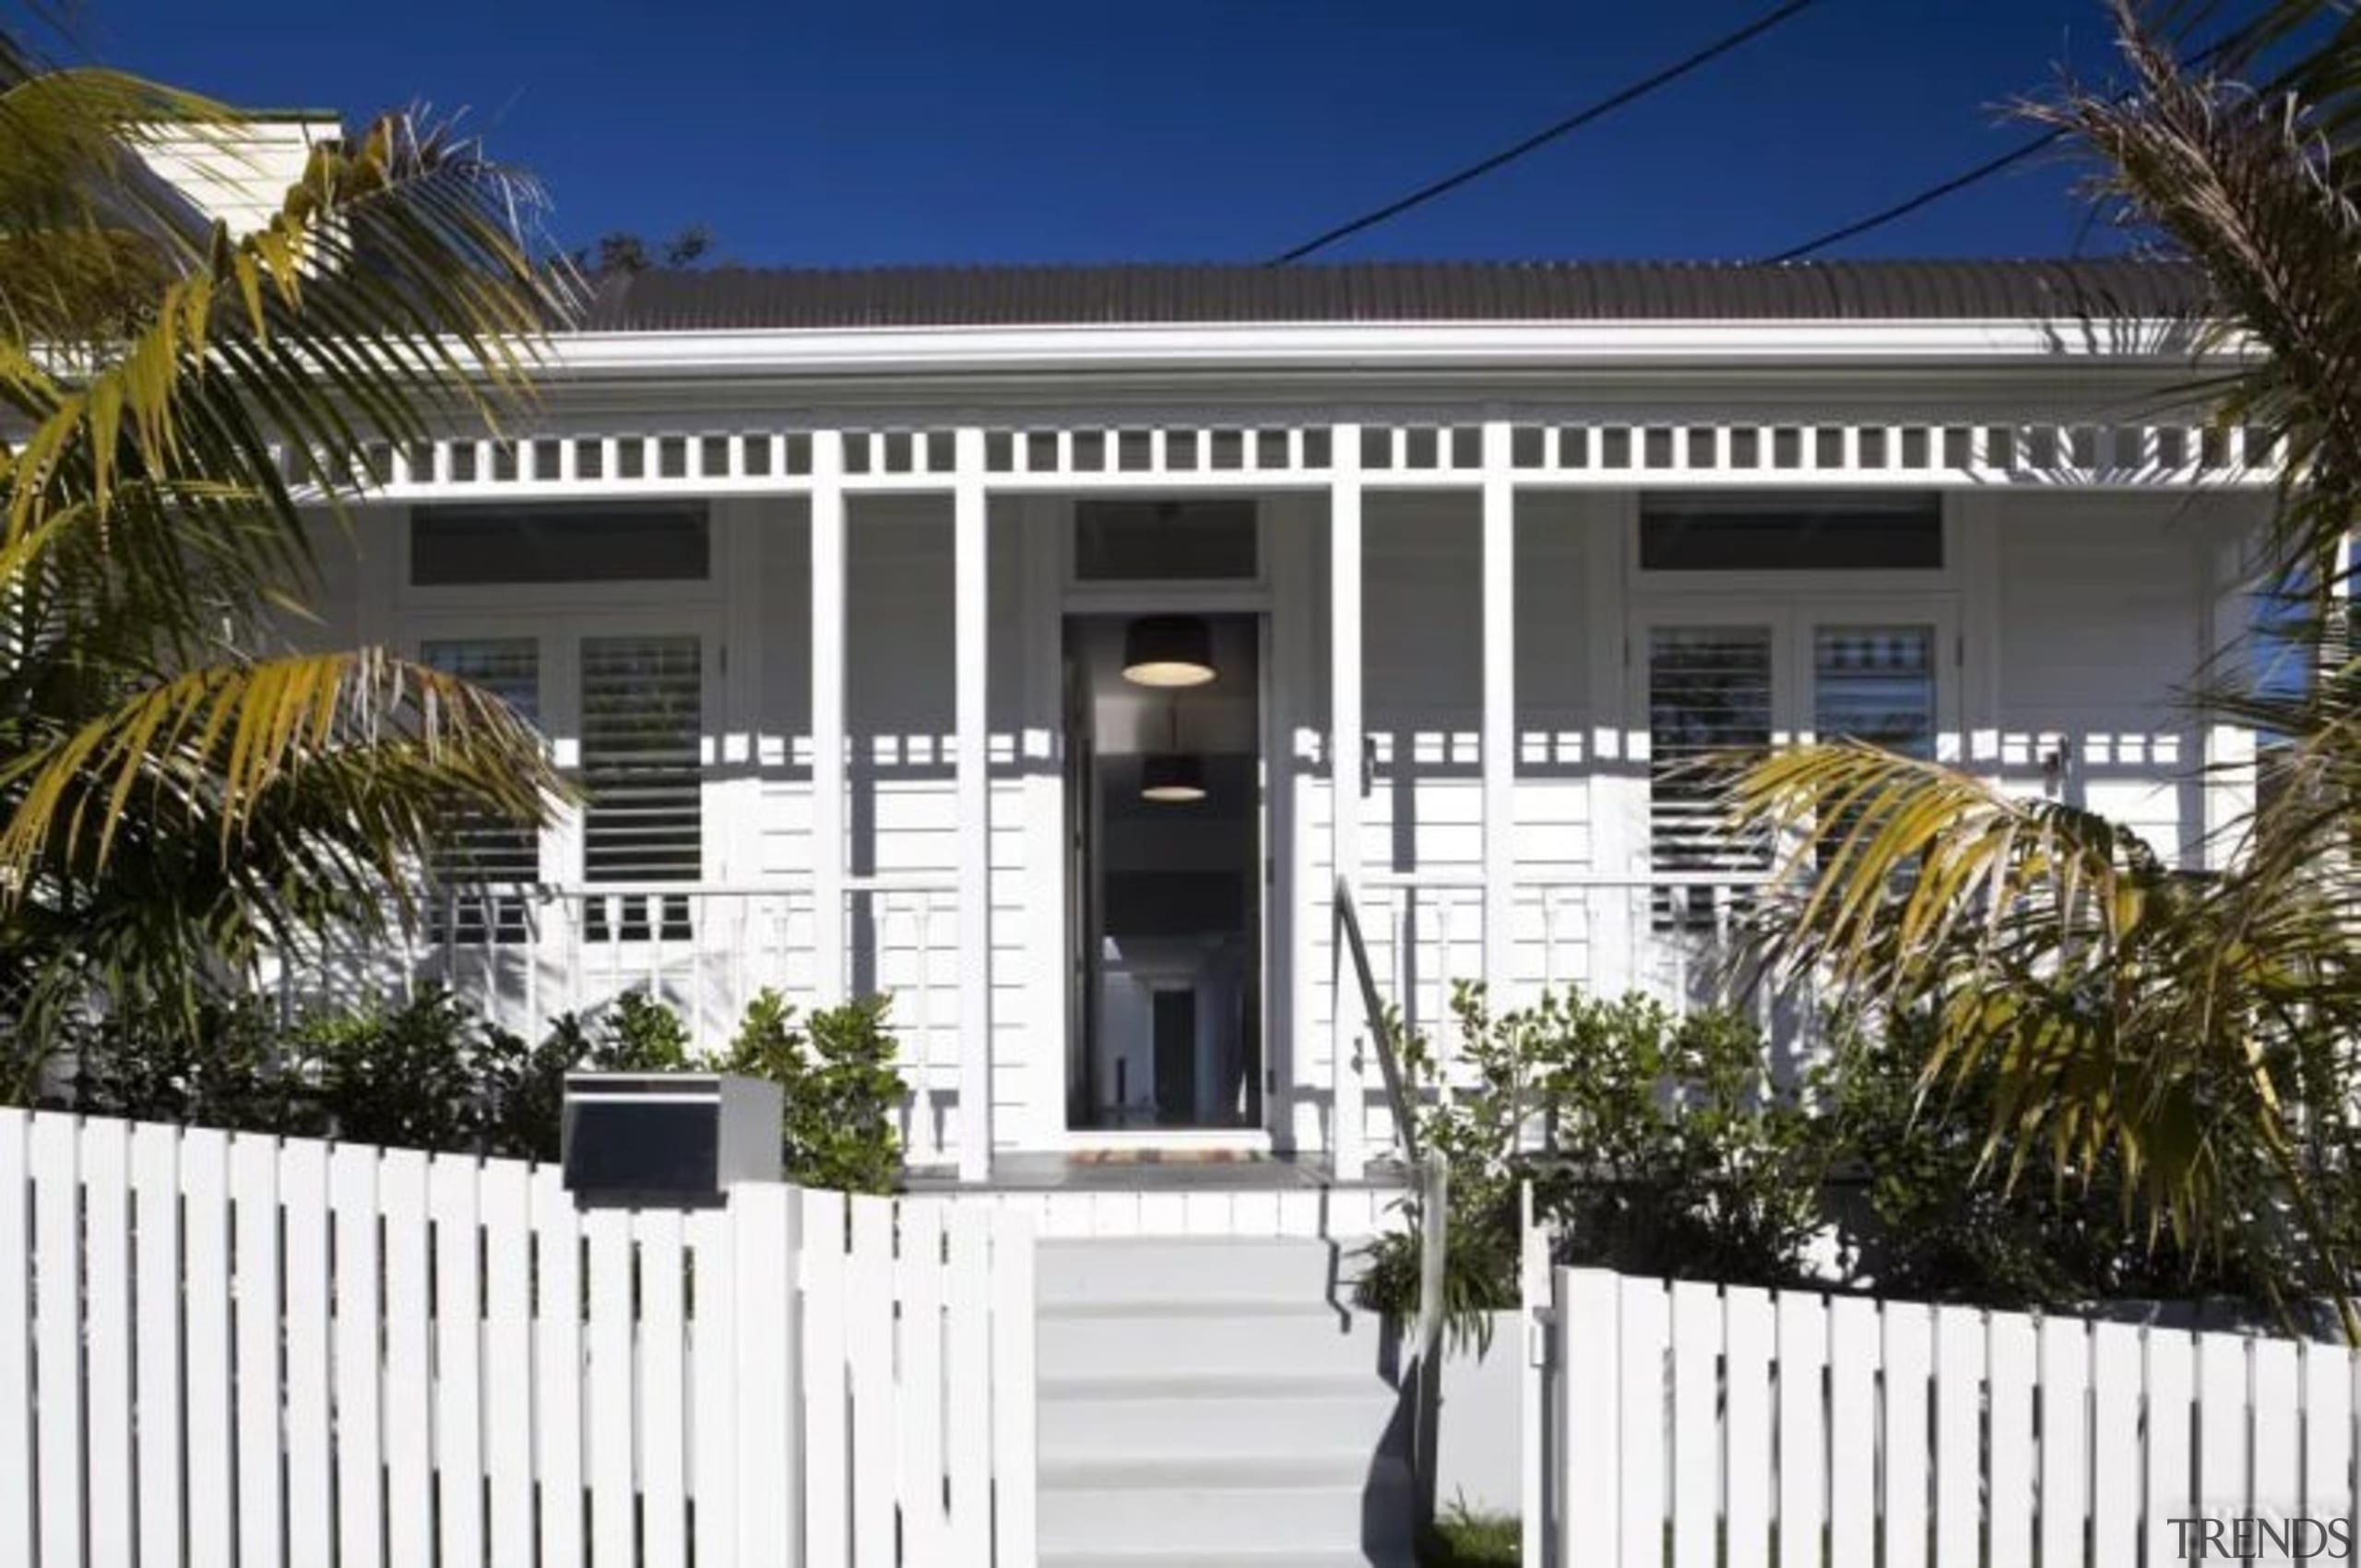 See the home here - An example of building, cottage, estate, facade, fence, home, house, picket fence, property, real estate, residential area, white